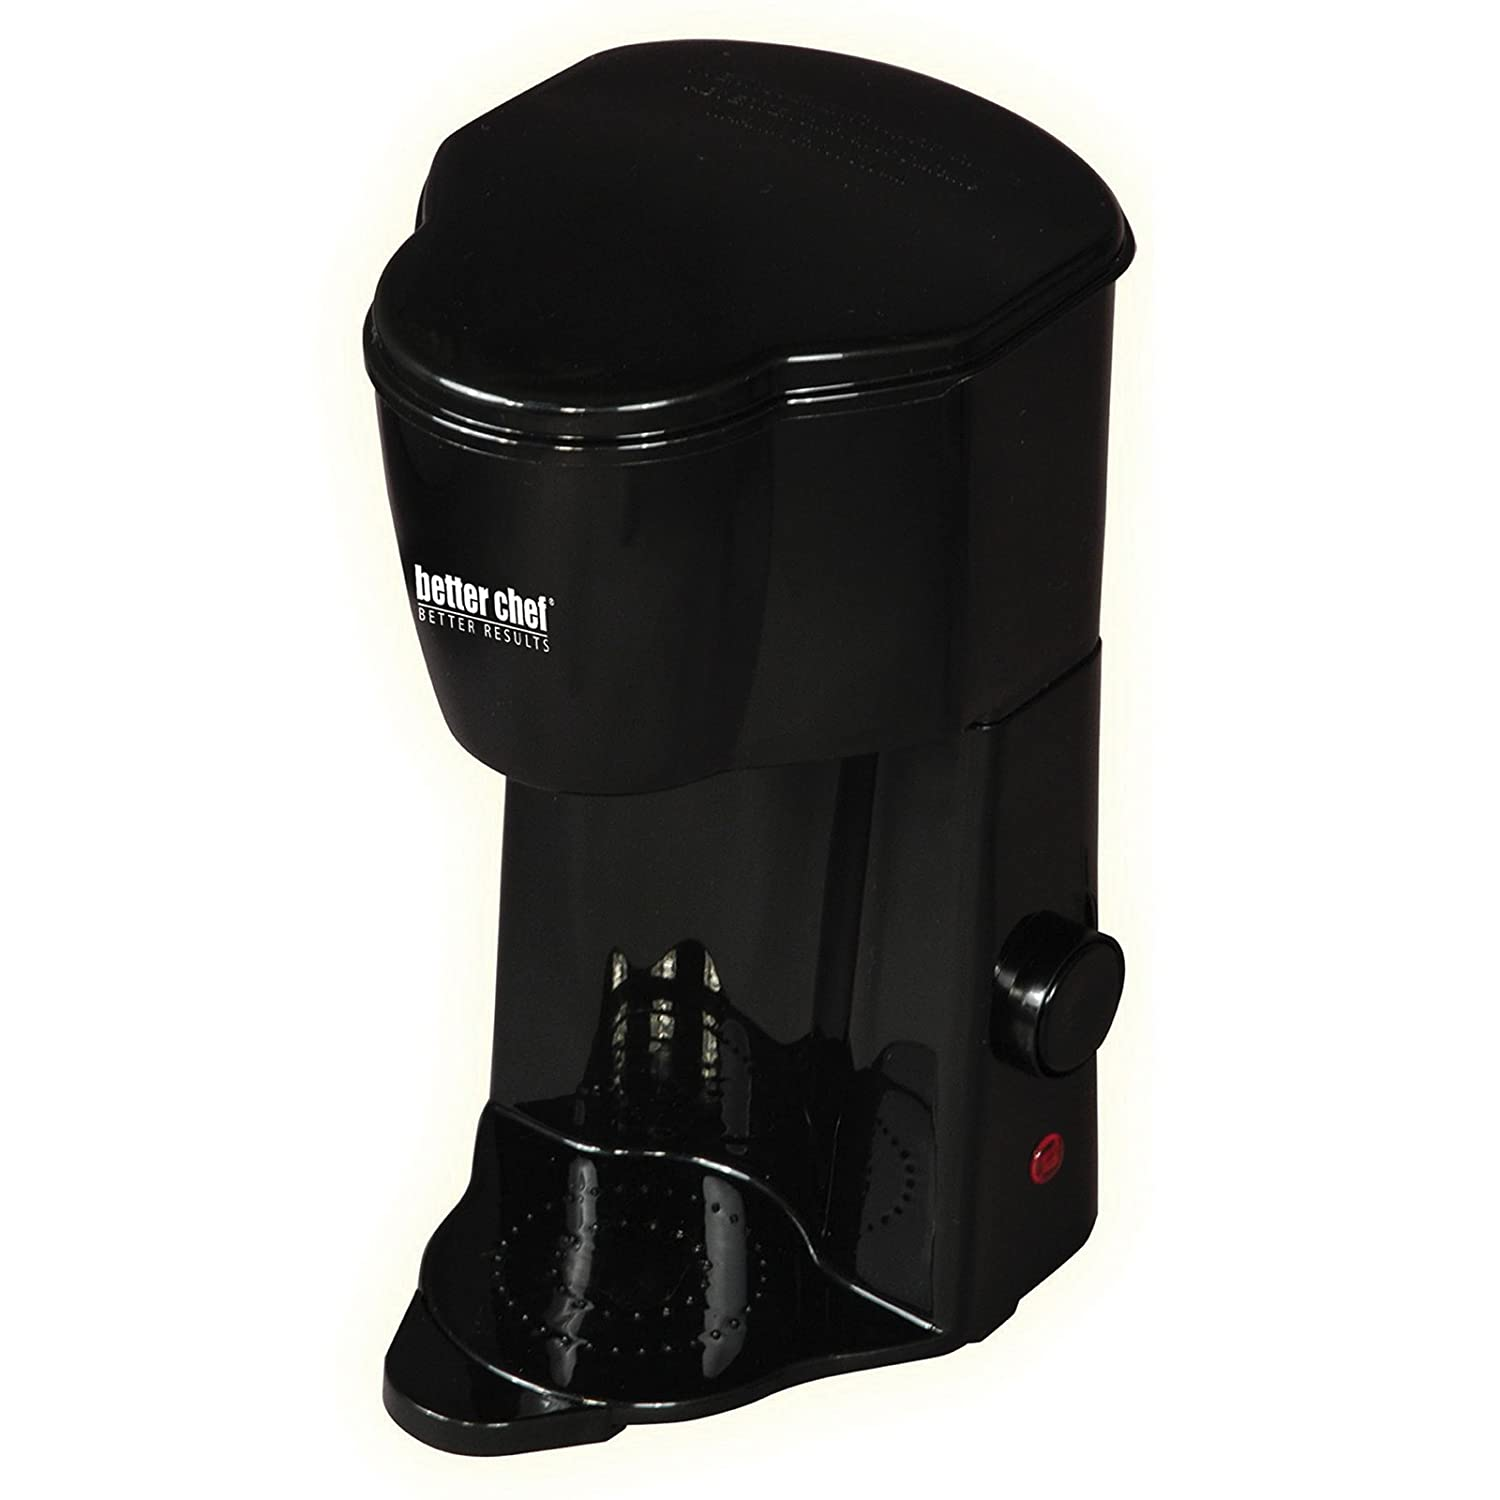 Personal Coffee Maker For Office : BETTER CHEF PERSONAL ONE CUP 12oz COFFEE COFE MAKER MACHINE KITCHEN DORM OFFICE eBay